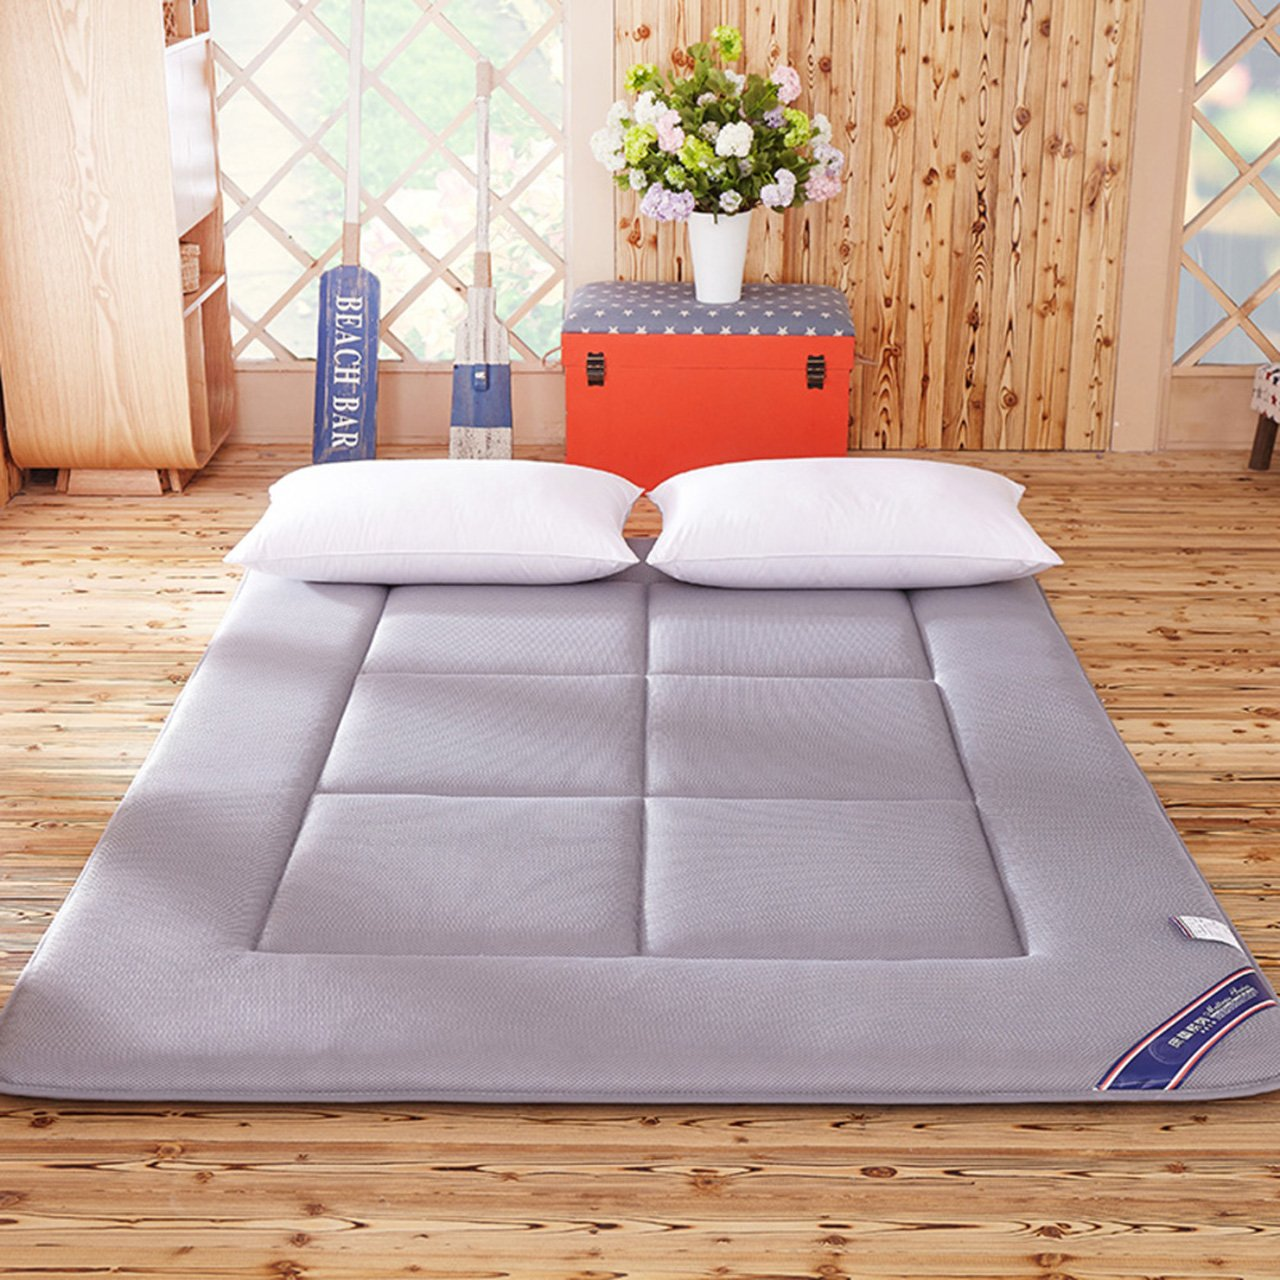 Yellow star Quilted foldable cushion mats,Tatami mattress student dorm futon mattress topper portable sleeping pad thin bed protection pad washable-C 90x200cm(35x79inch)